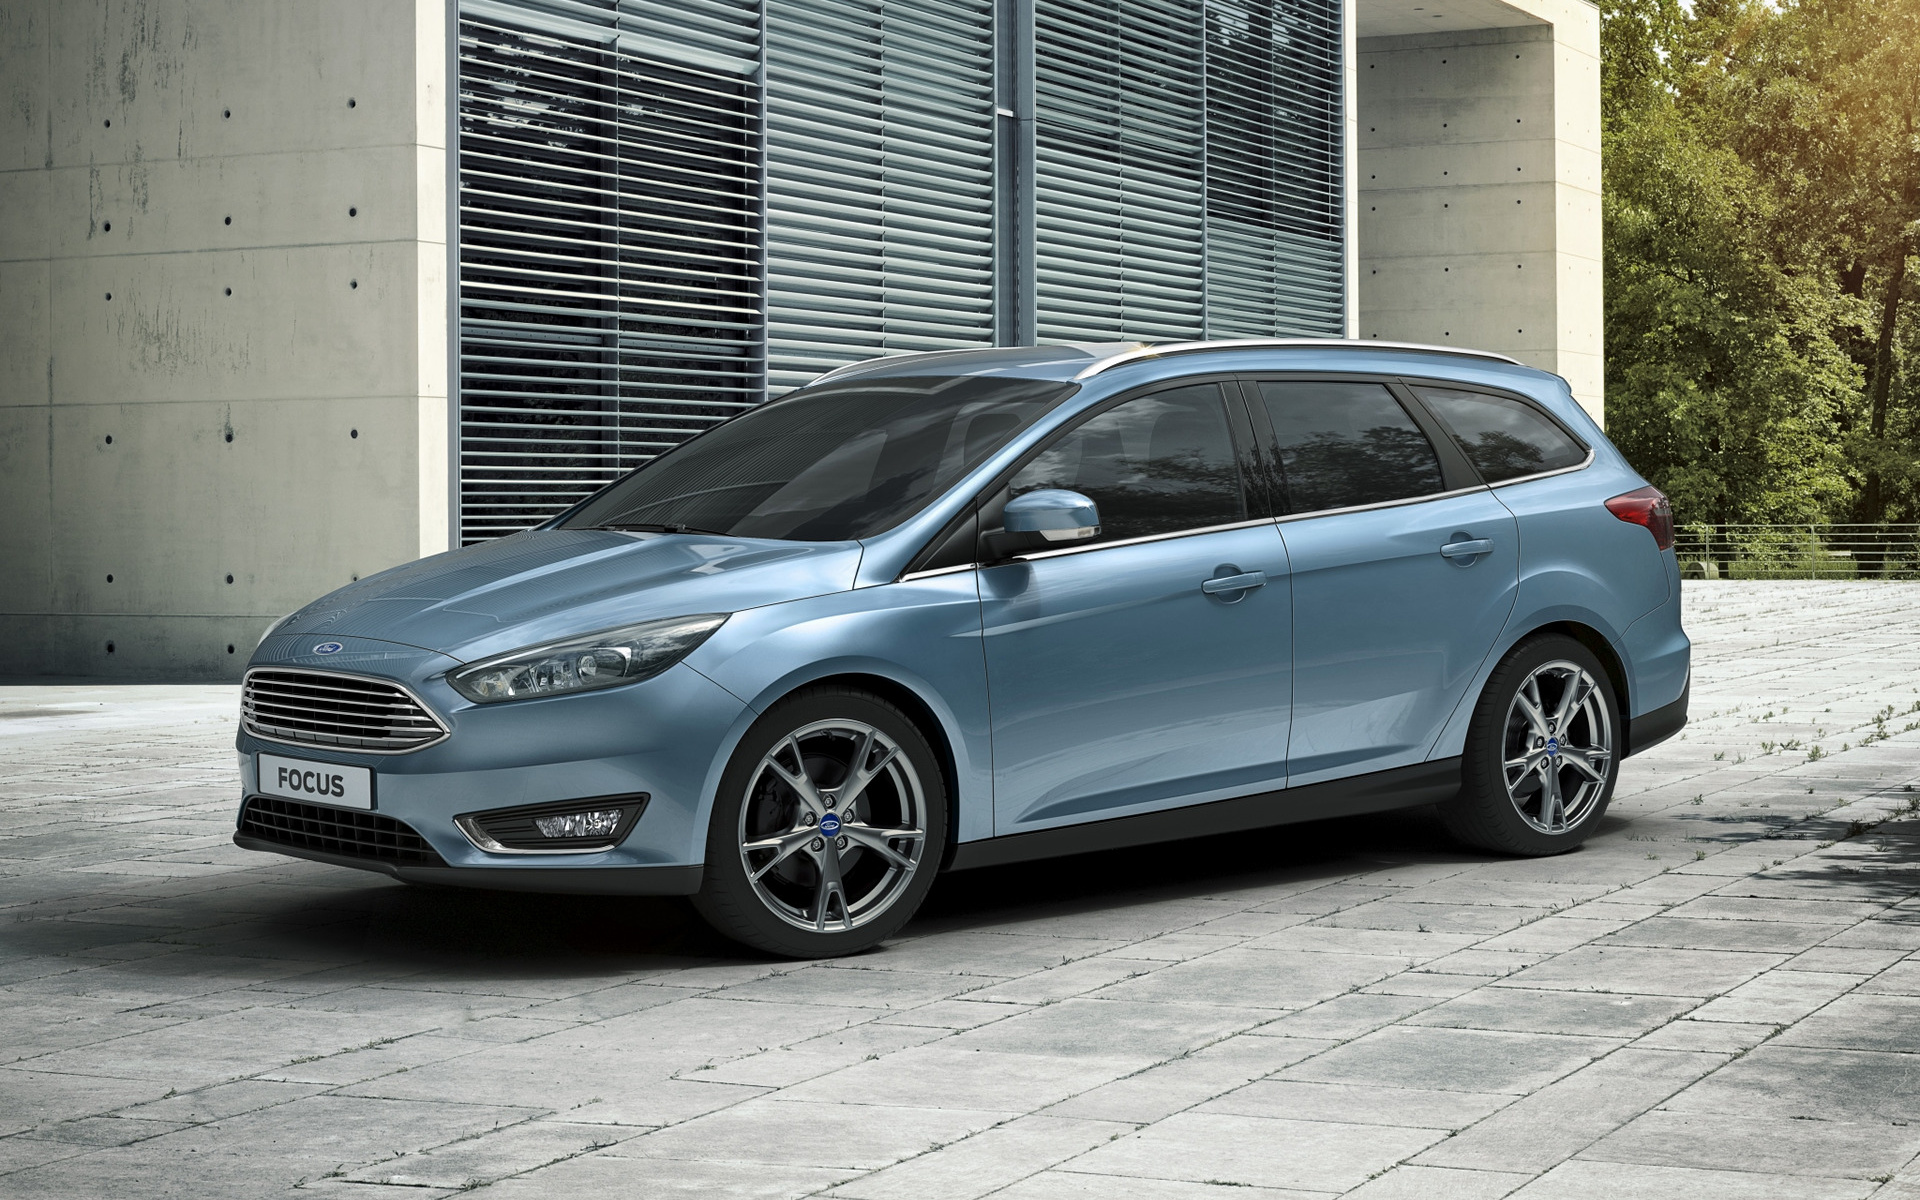 ford focus turnier (2014) wallpapers and hd images - car pixel